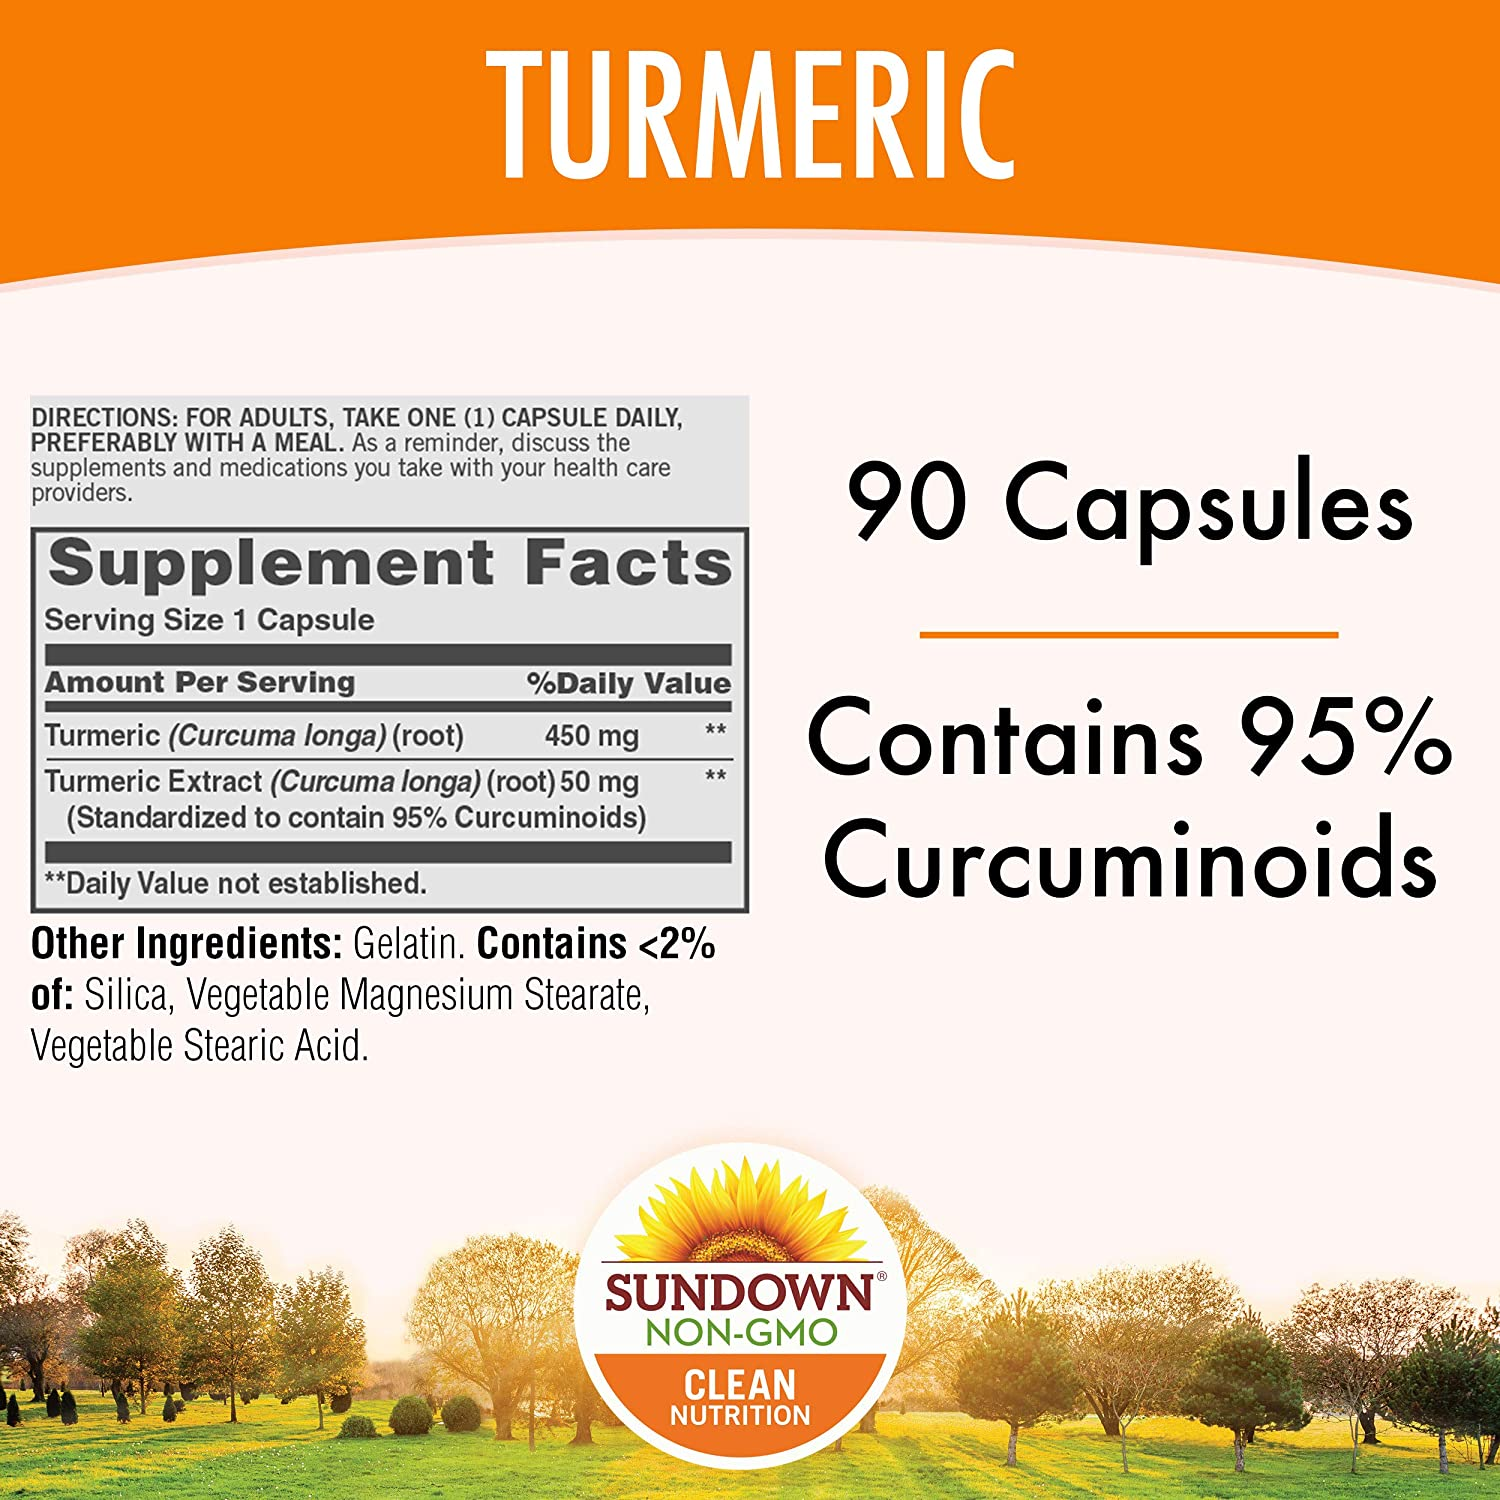 Turmeric Supplements by Sundown, for Antioxidant Health, Standardized Turmeric Extract, Non-GMOˆ, Free of Gluten, Dairy, Artificial Flavors, 500 mg, 90 Capsules: Health & Personal Care